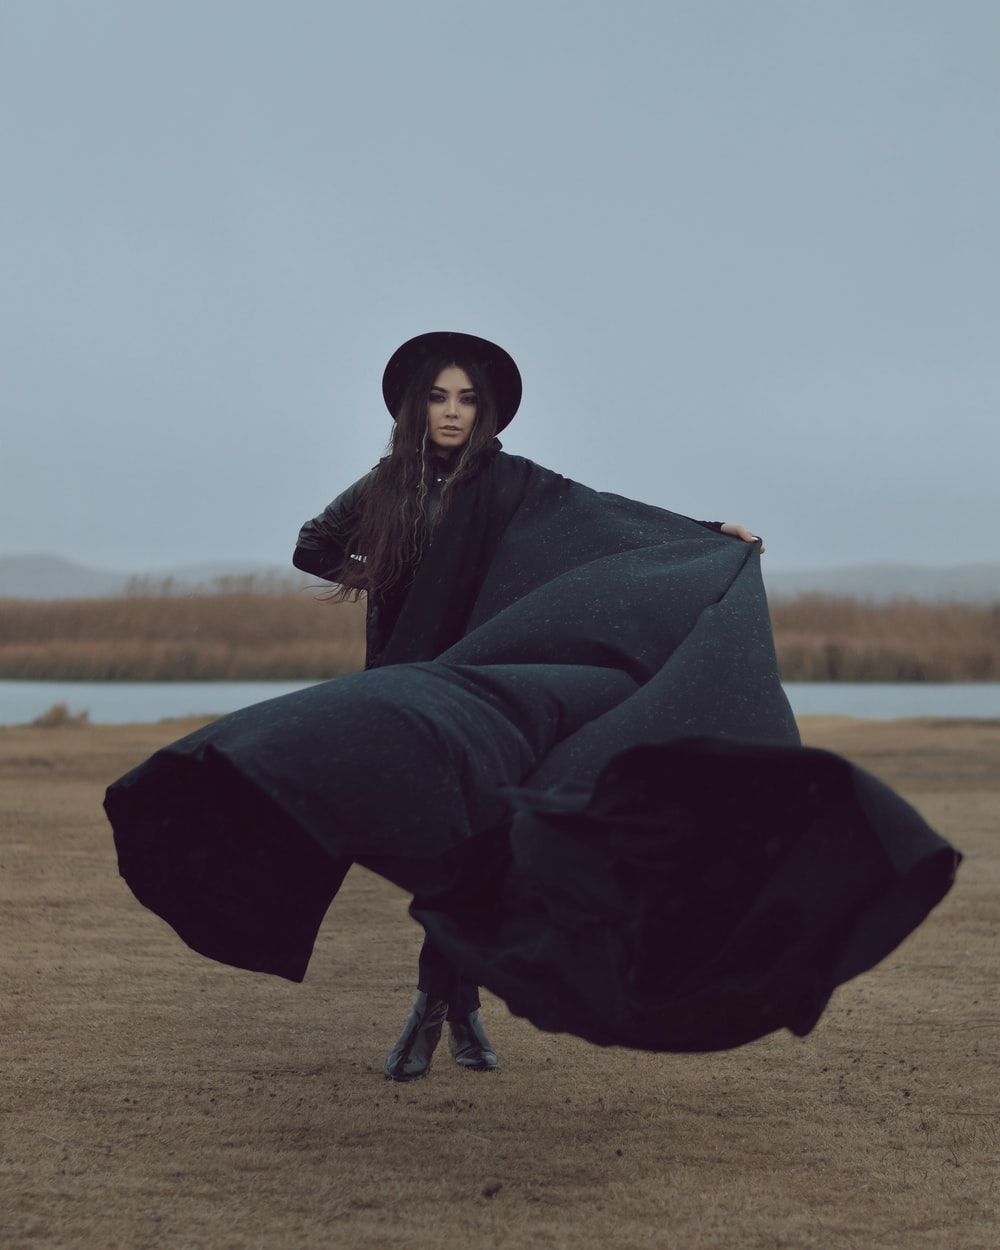 woman in black robe sitting on brown field during daytime